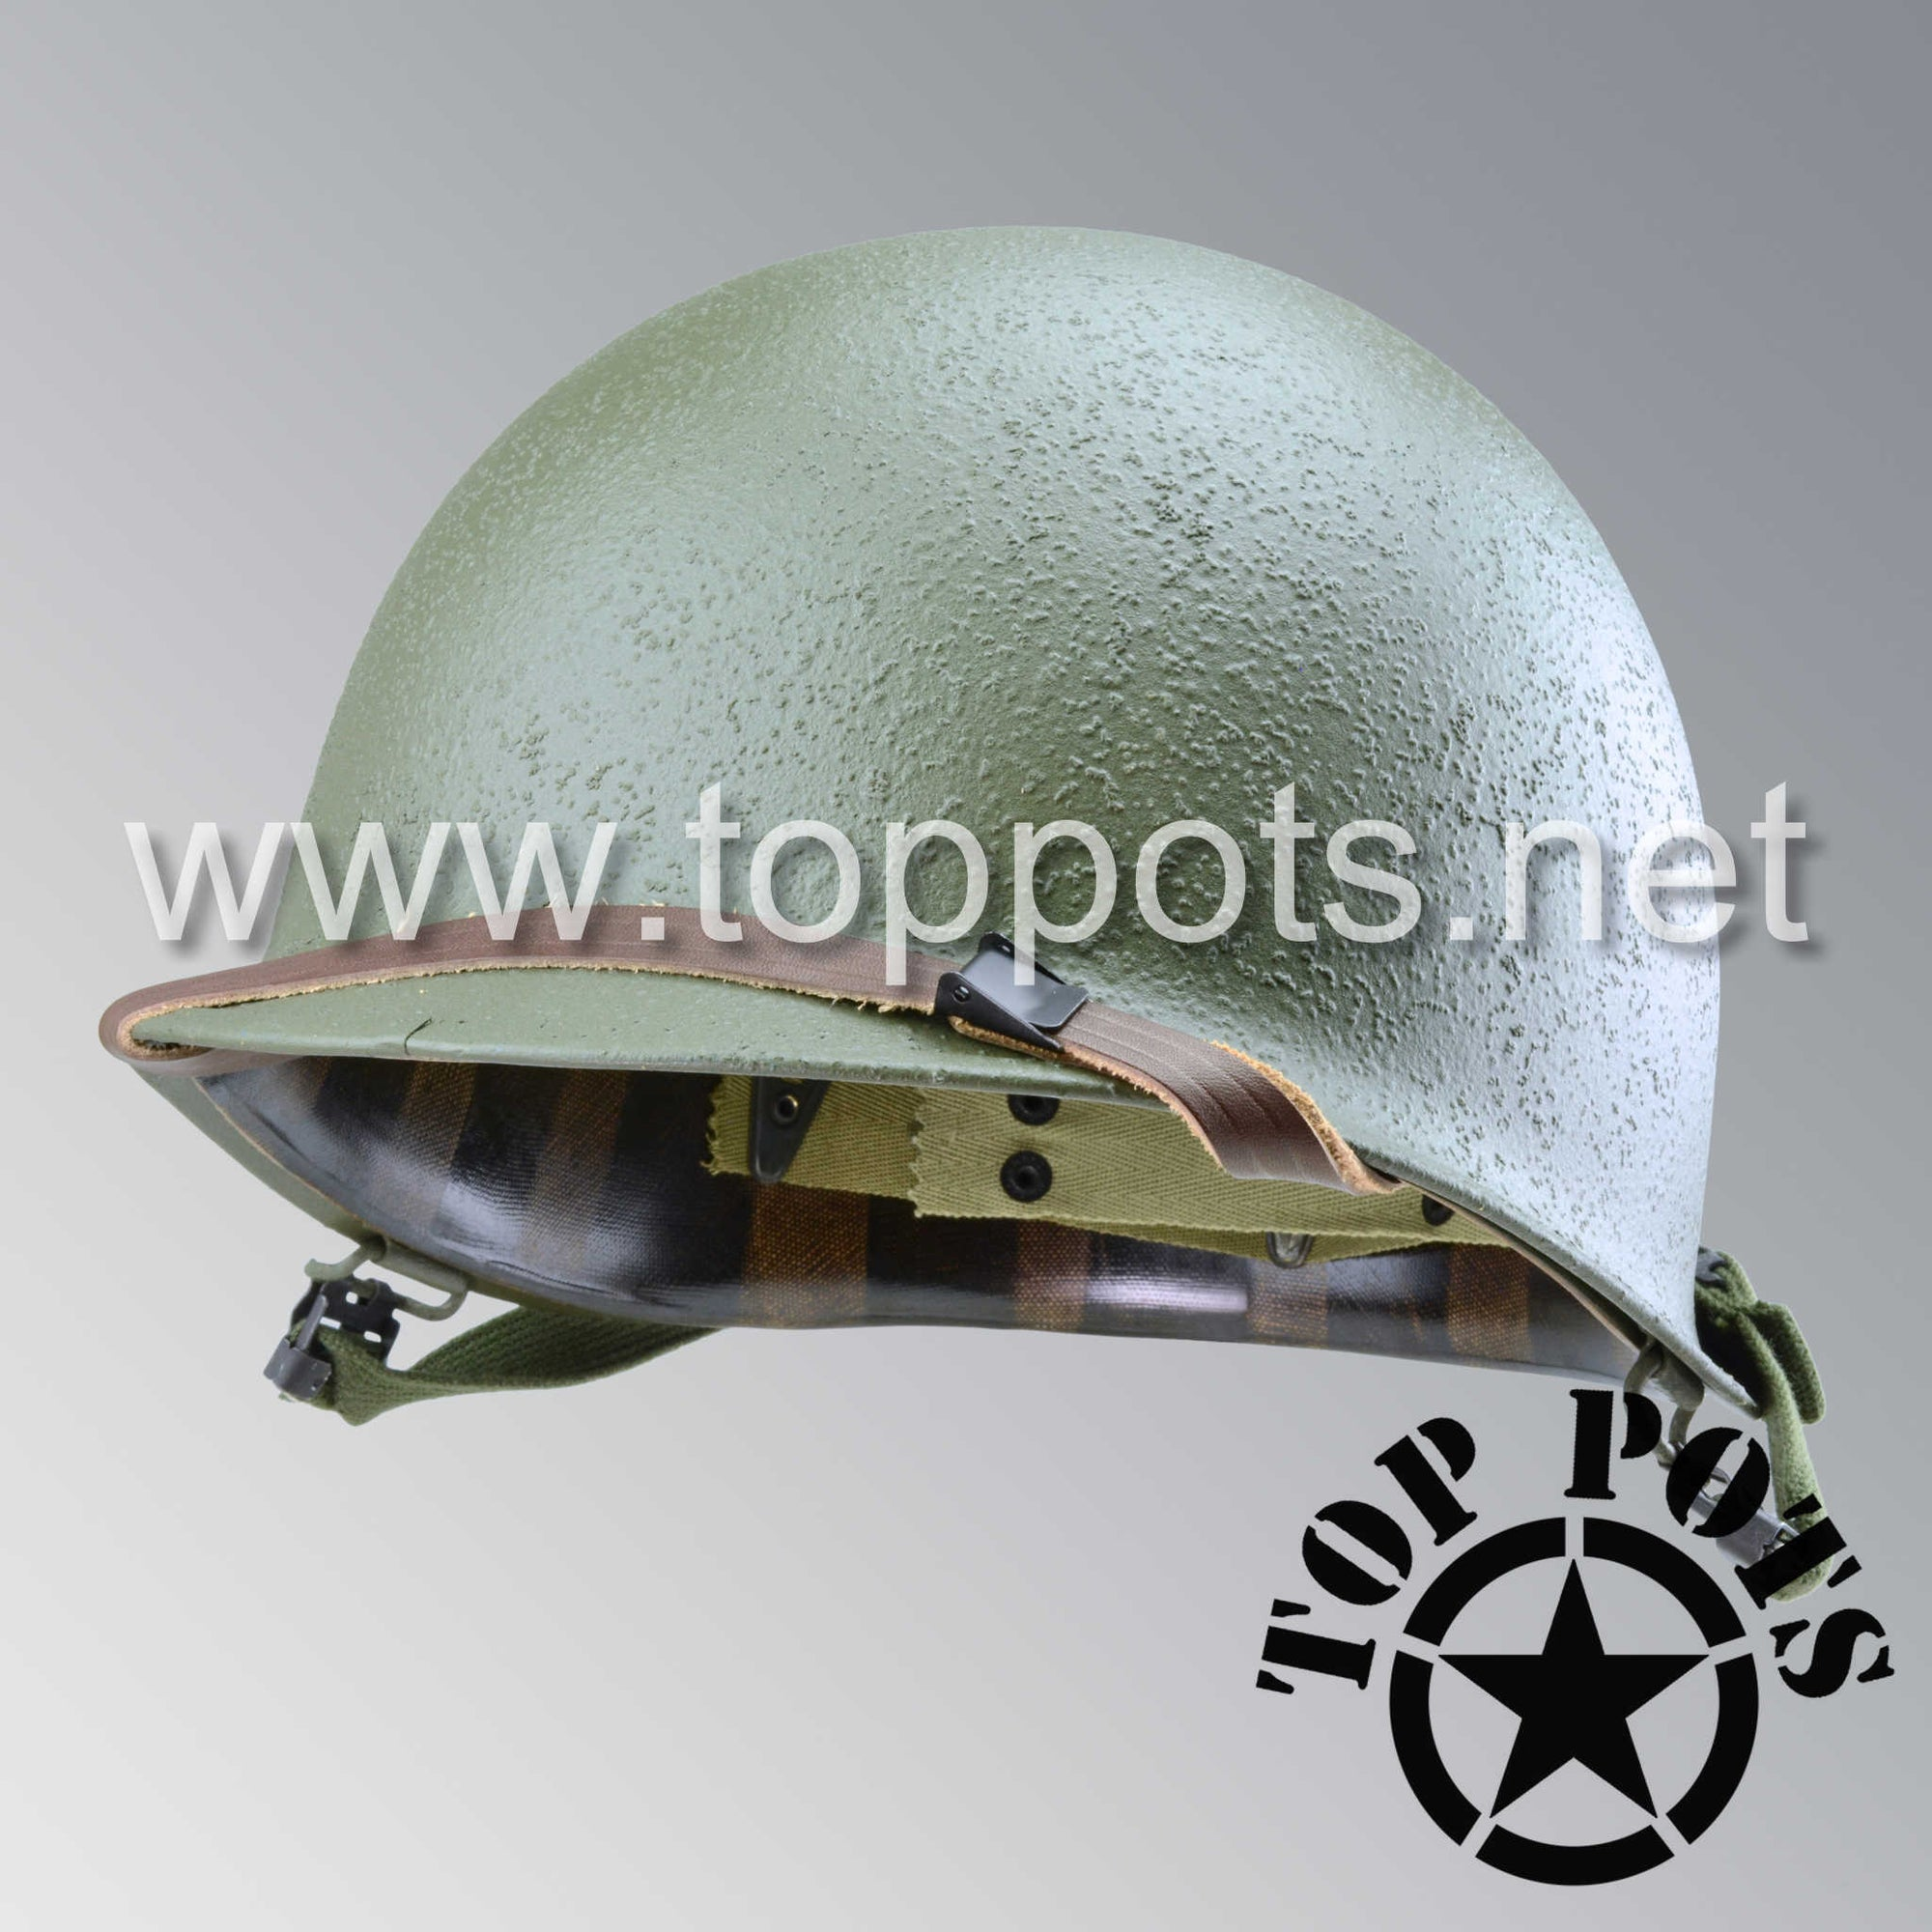 Image 1 of WWII US Army Restored Original M1 Infantry Helmet Swivel Bale Shell and Liner with Late War T1 Chinstraps